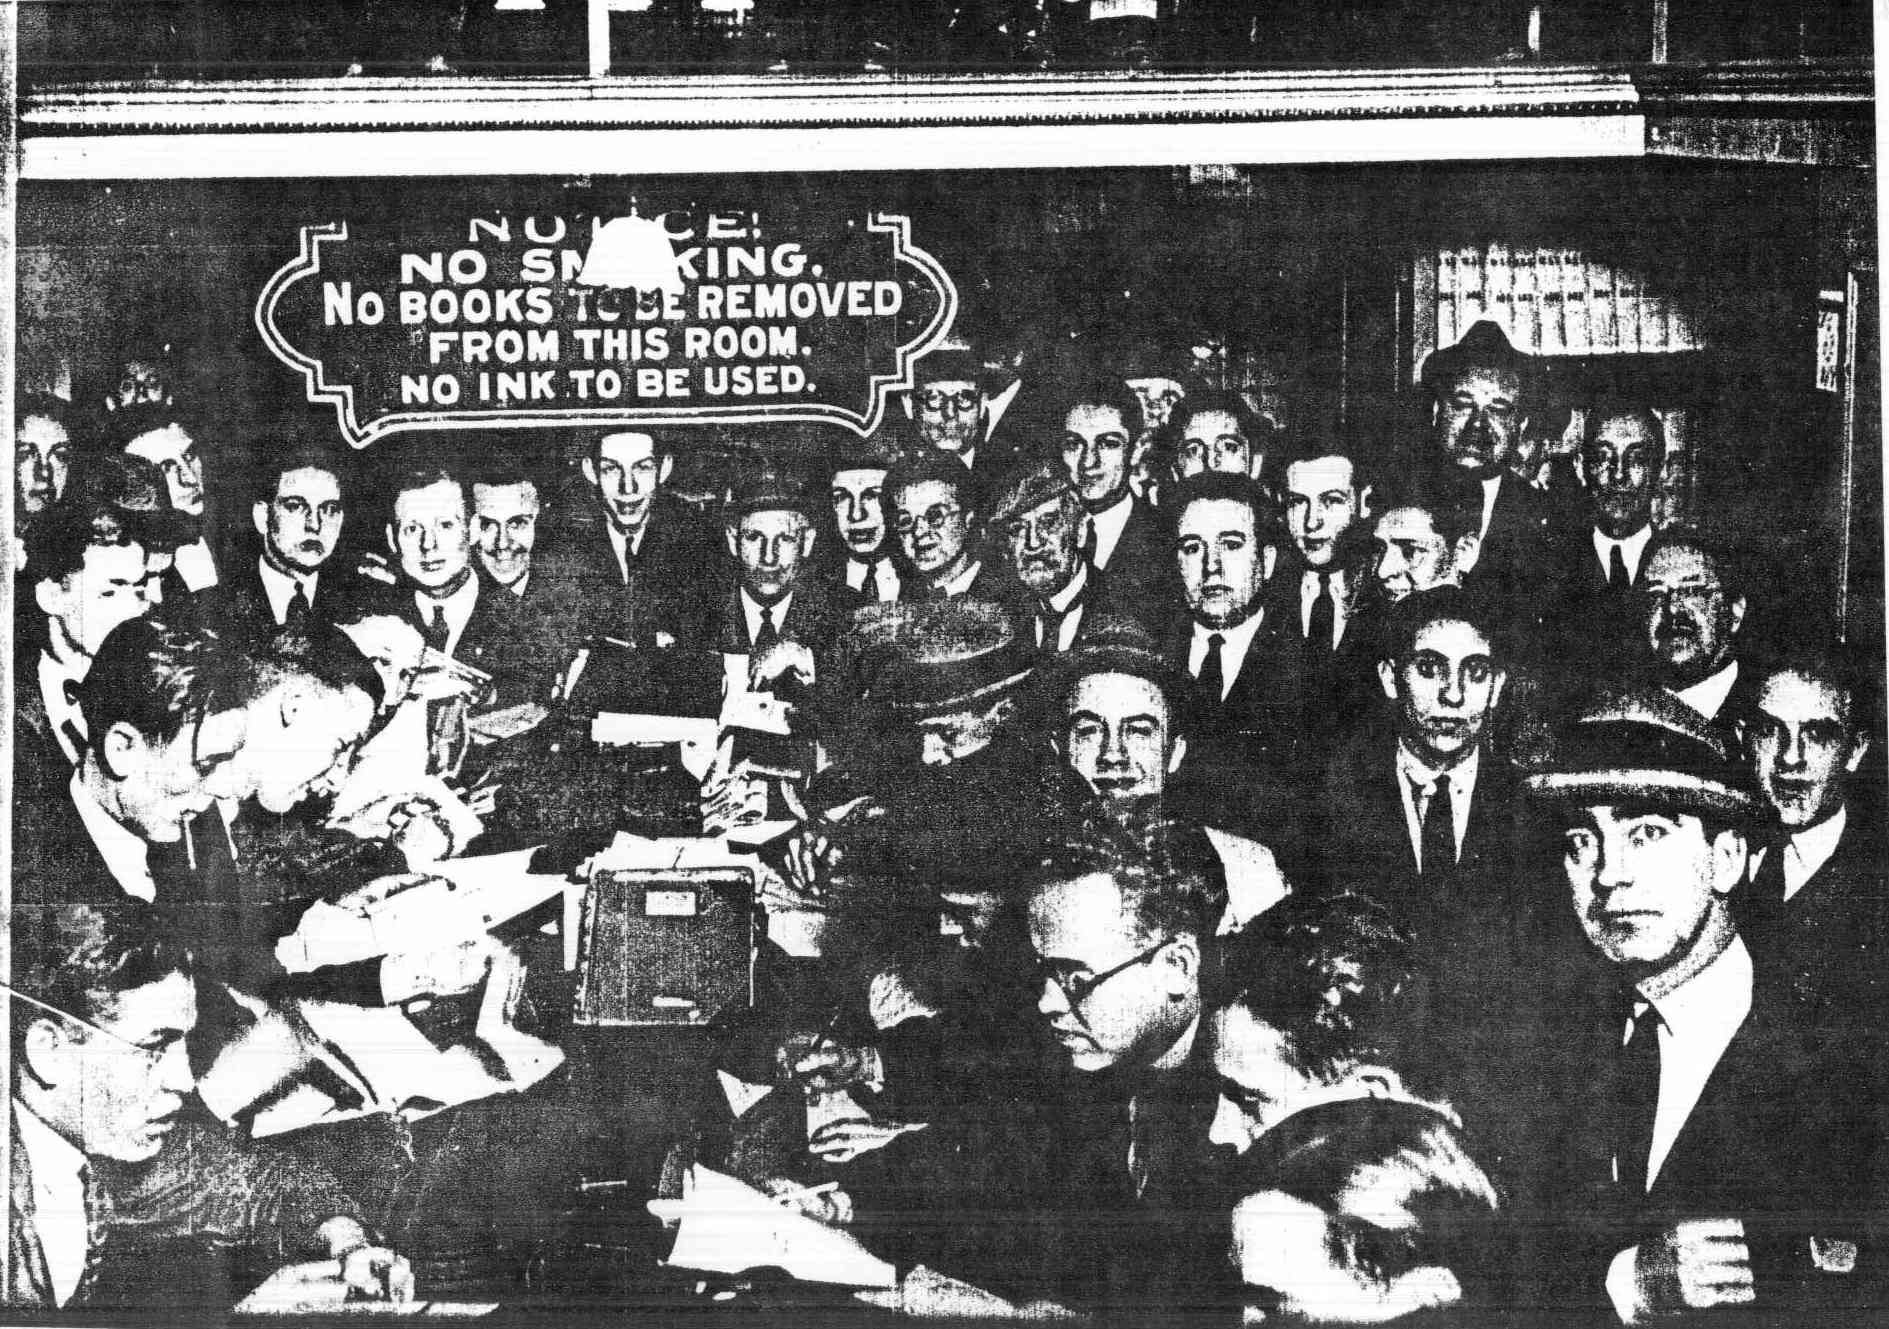 Picture of title searchers in the Philadelphia Record Room from about the 1940s